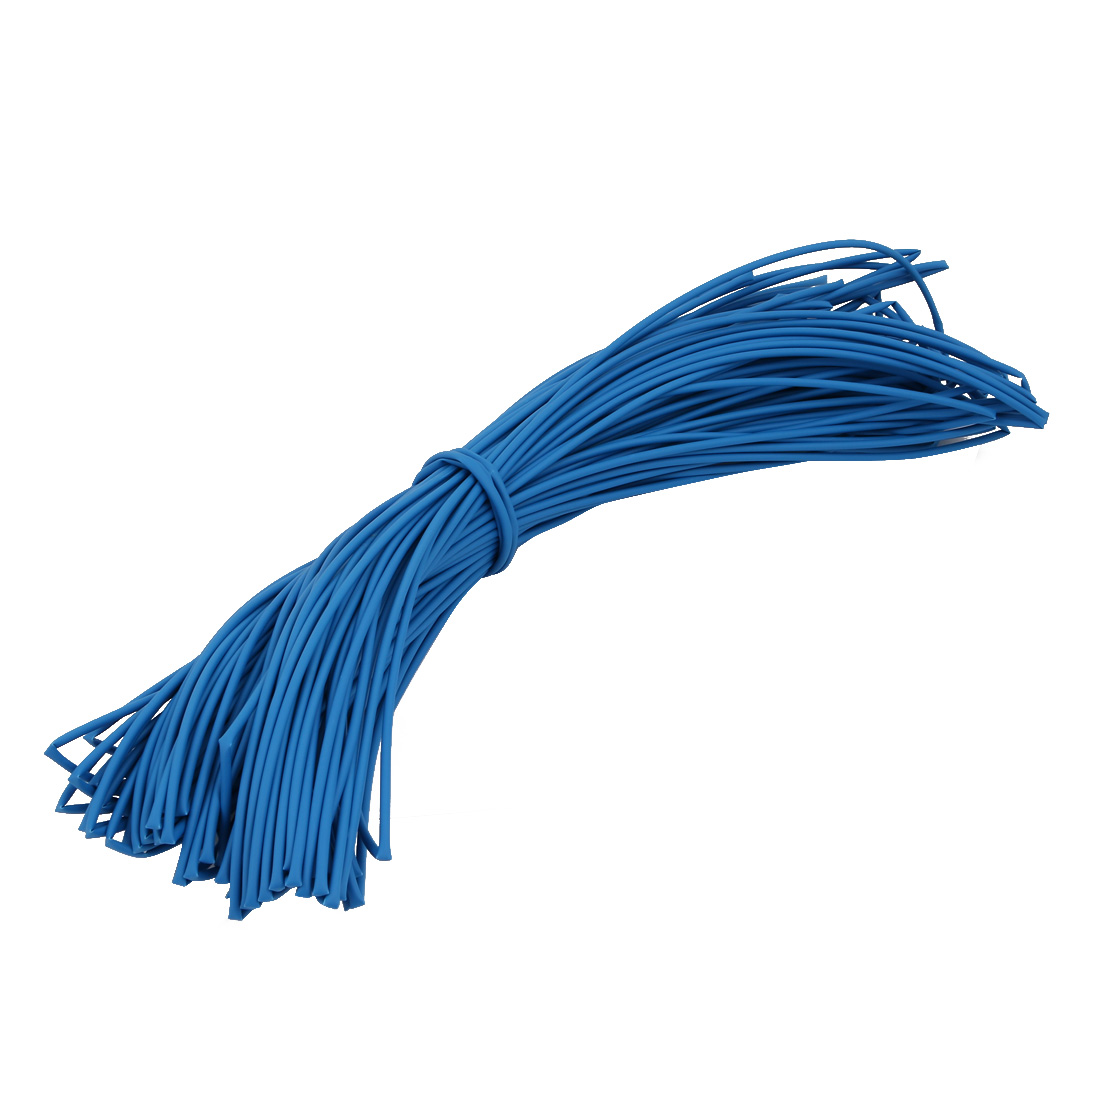 50M 0.08in Inner Dia Polyolefin Flame Retardant Tube Blue for Wire Repairing